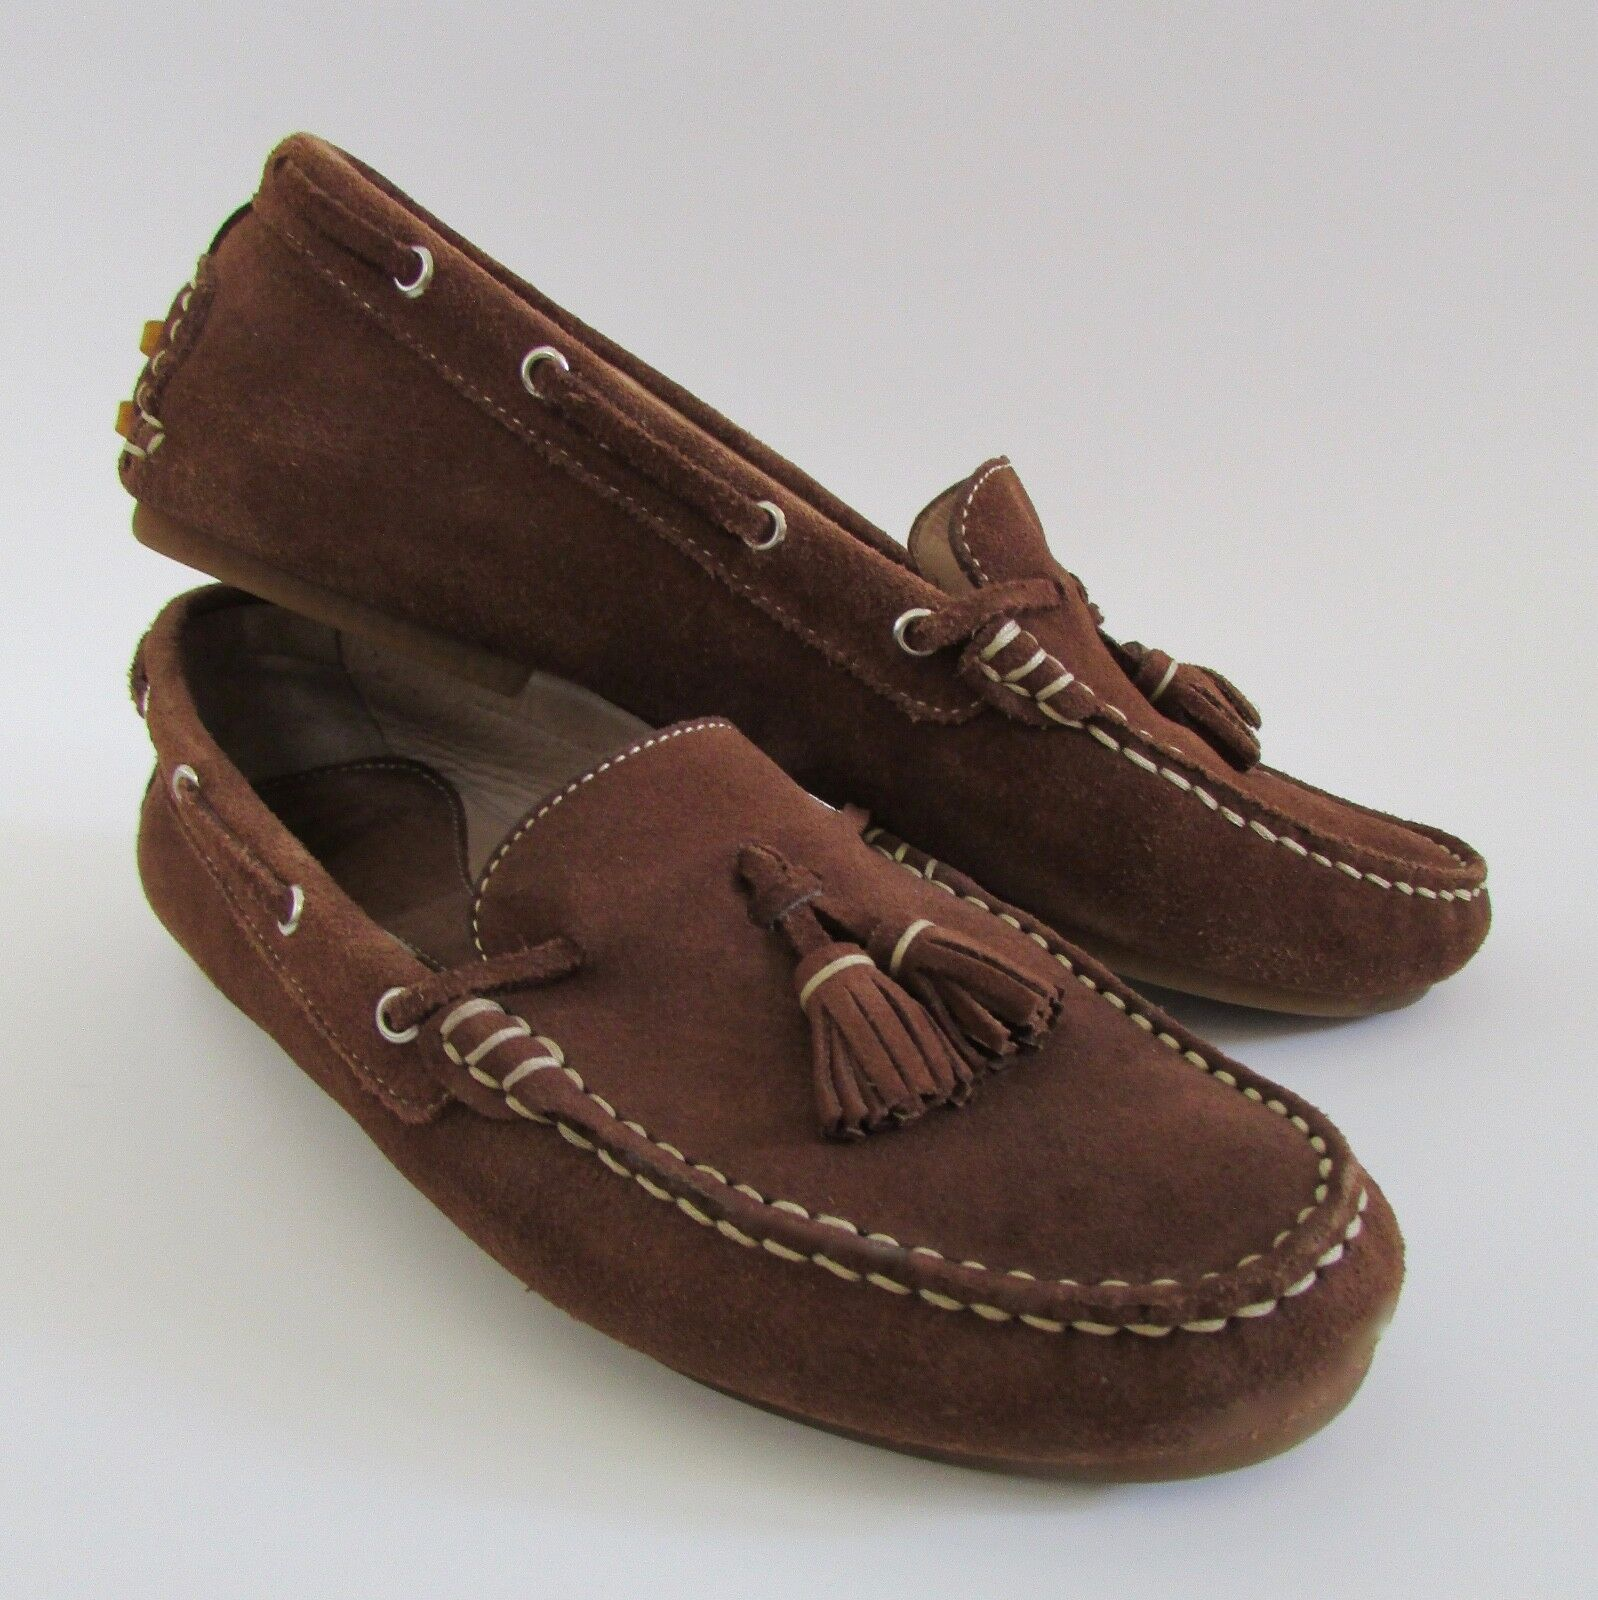 Robert Clergerie France Suede Tassled Driving Loafers Mocs Sz 5.5